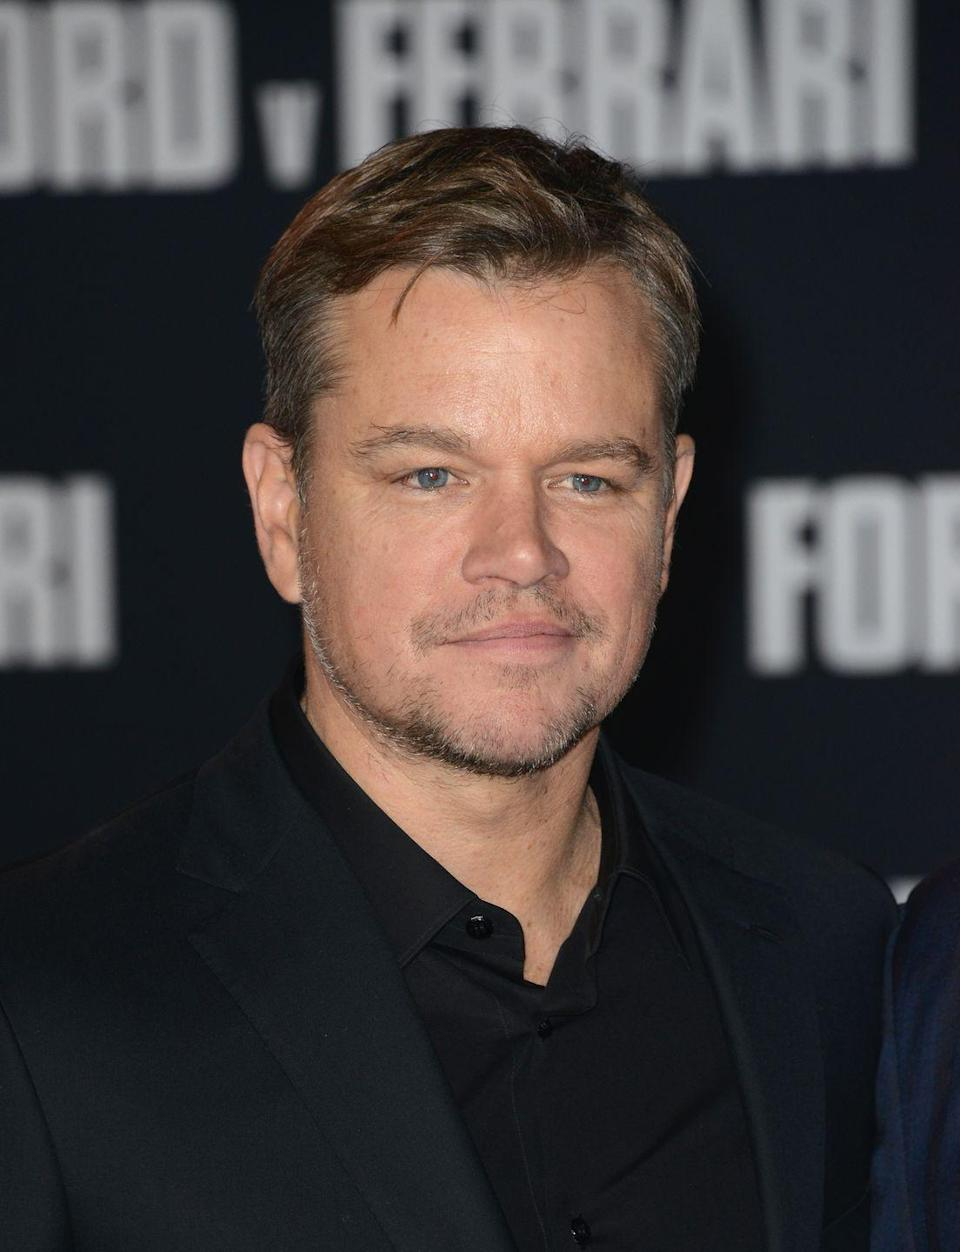 <p><strong>Hair</strong></p><p>Matt Damon's hair choices have been pretty consistent over the years, just like his reign in Hollywood. </p>